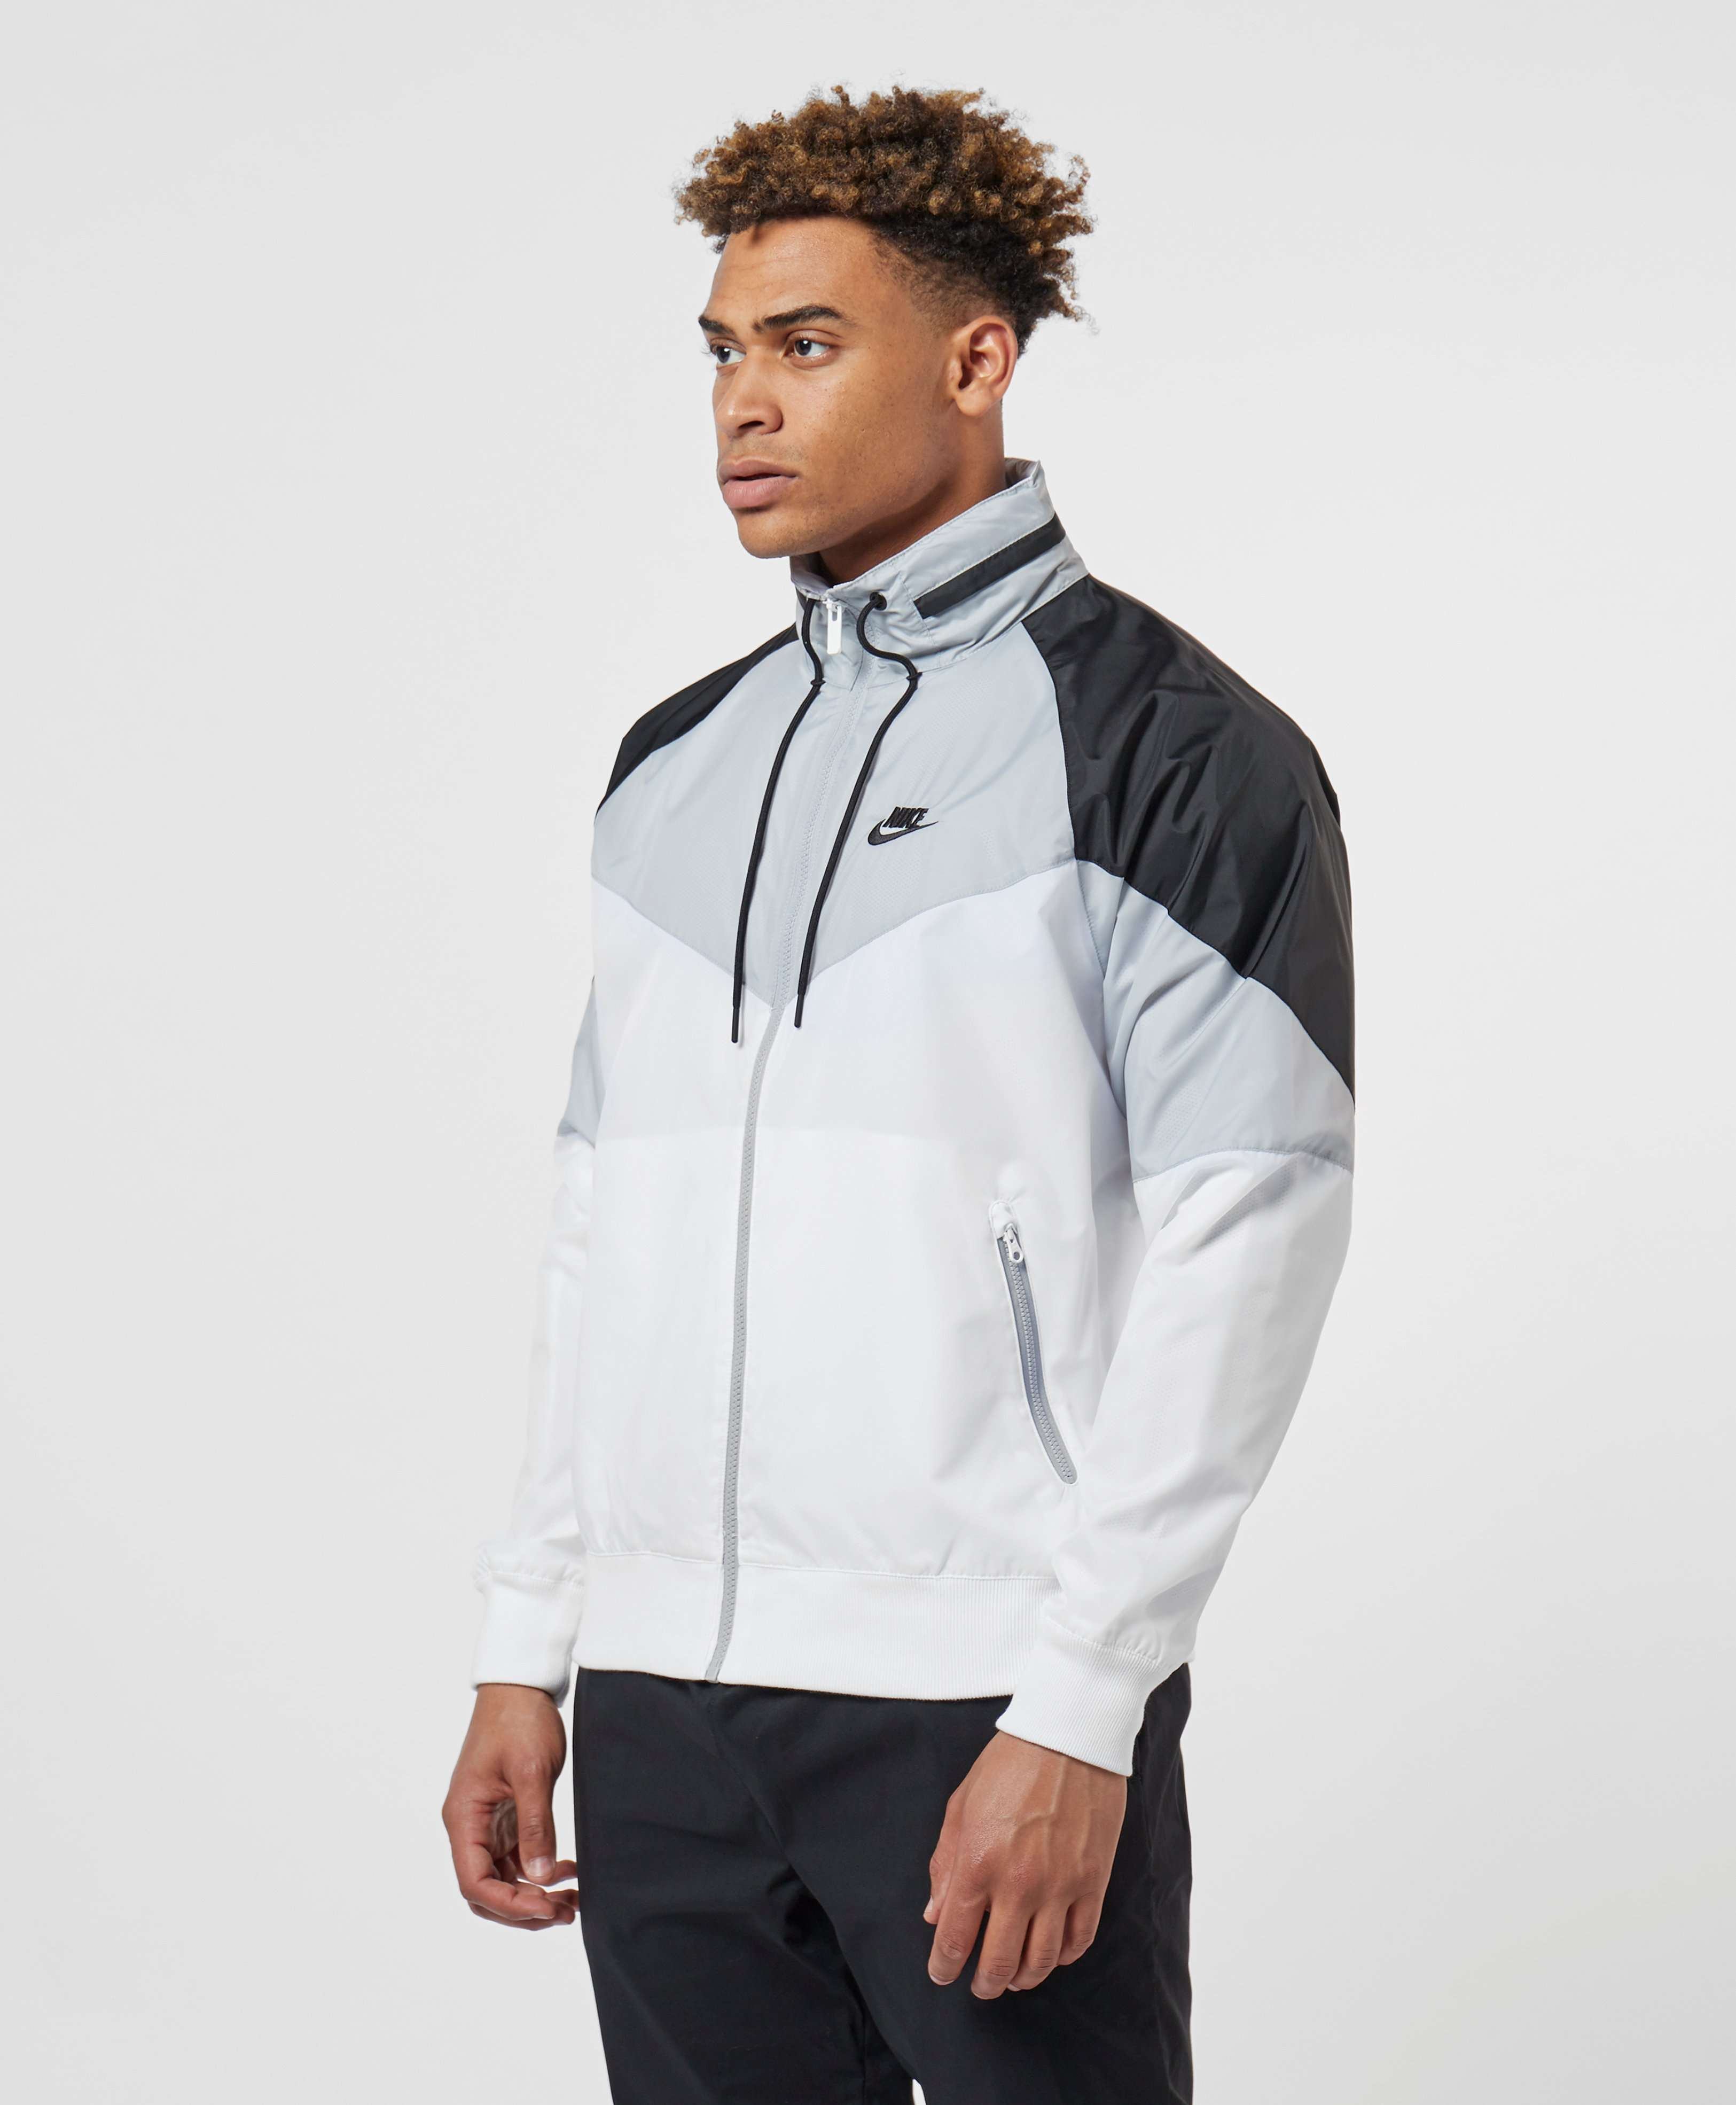 Nike Sportswear Retro Windbreaker Jacket